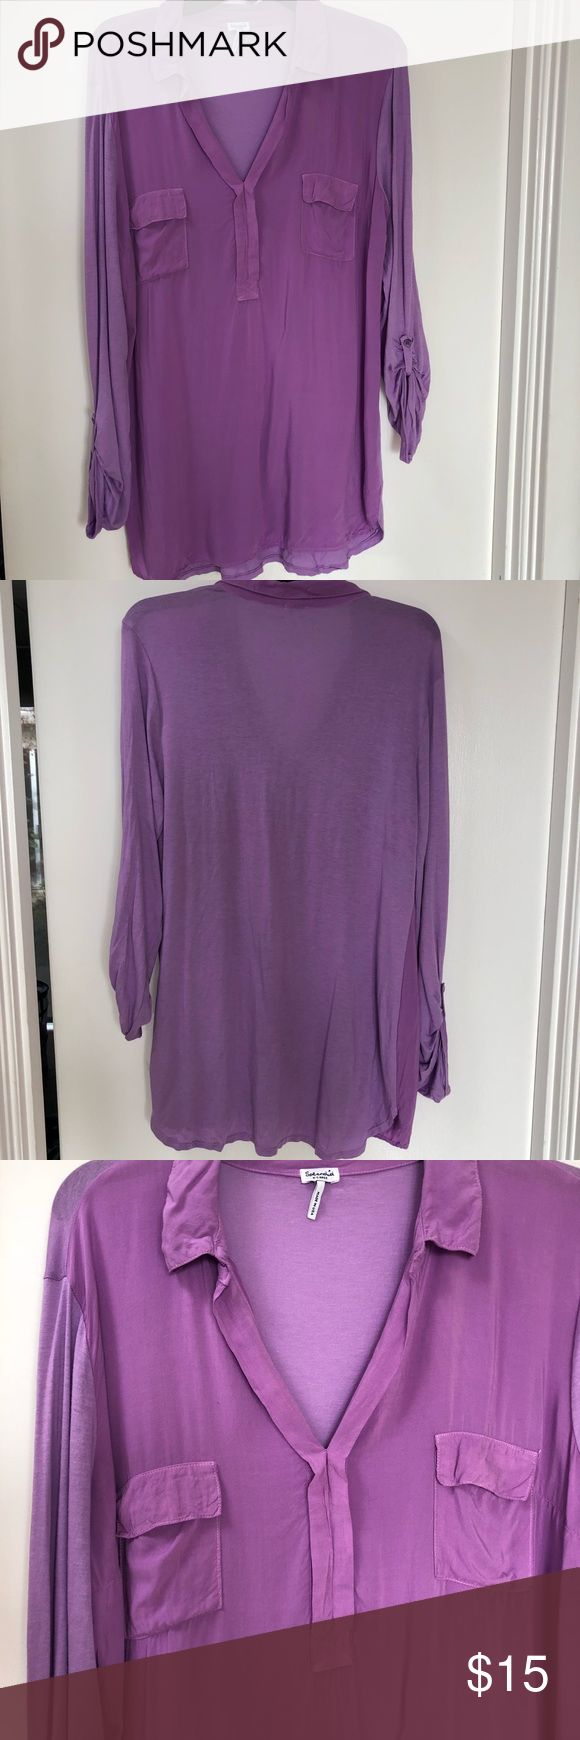 Splendid Purple Long Sleeve Top Sz XL Splendid Purple Top Sz XL  Fits loose but could fit a size M  *Preowned, excellent condition Splendid Tops Tees - Long Sleeve